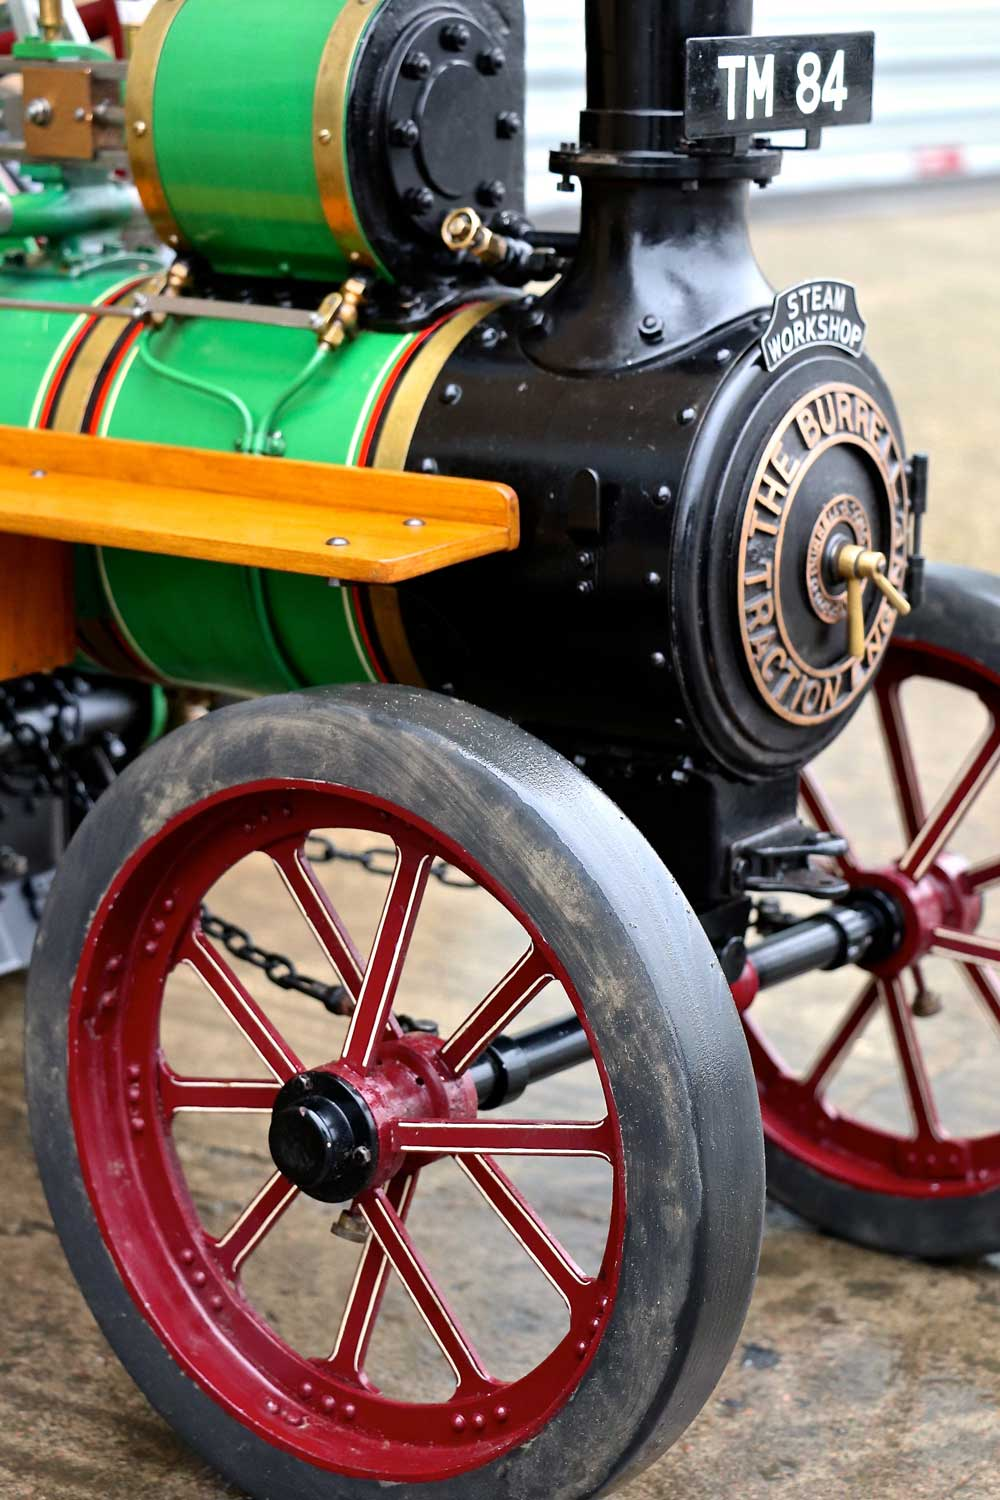 test 3-inch-Burrell-traction-engine-plastow-live-steam-for-sale-16